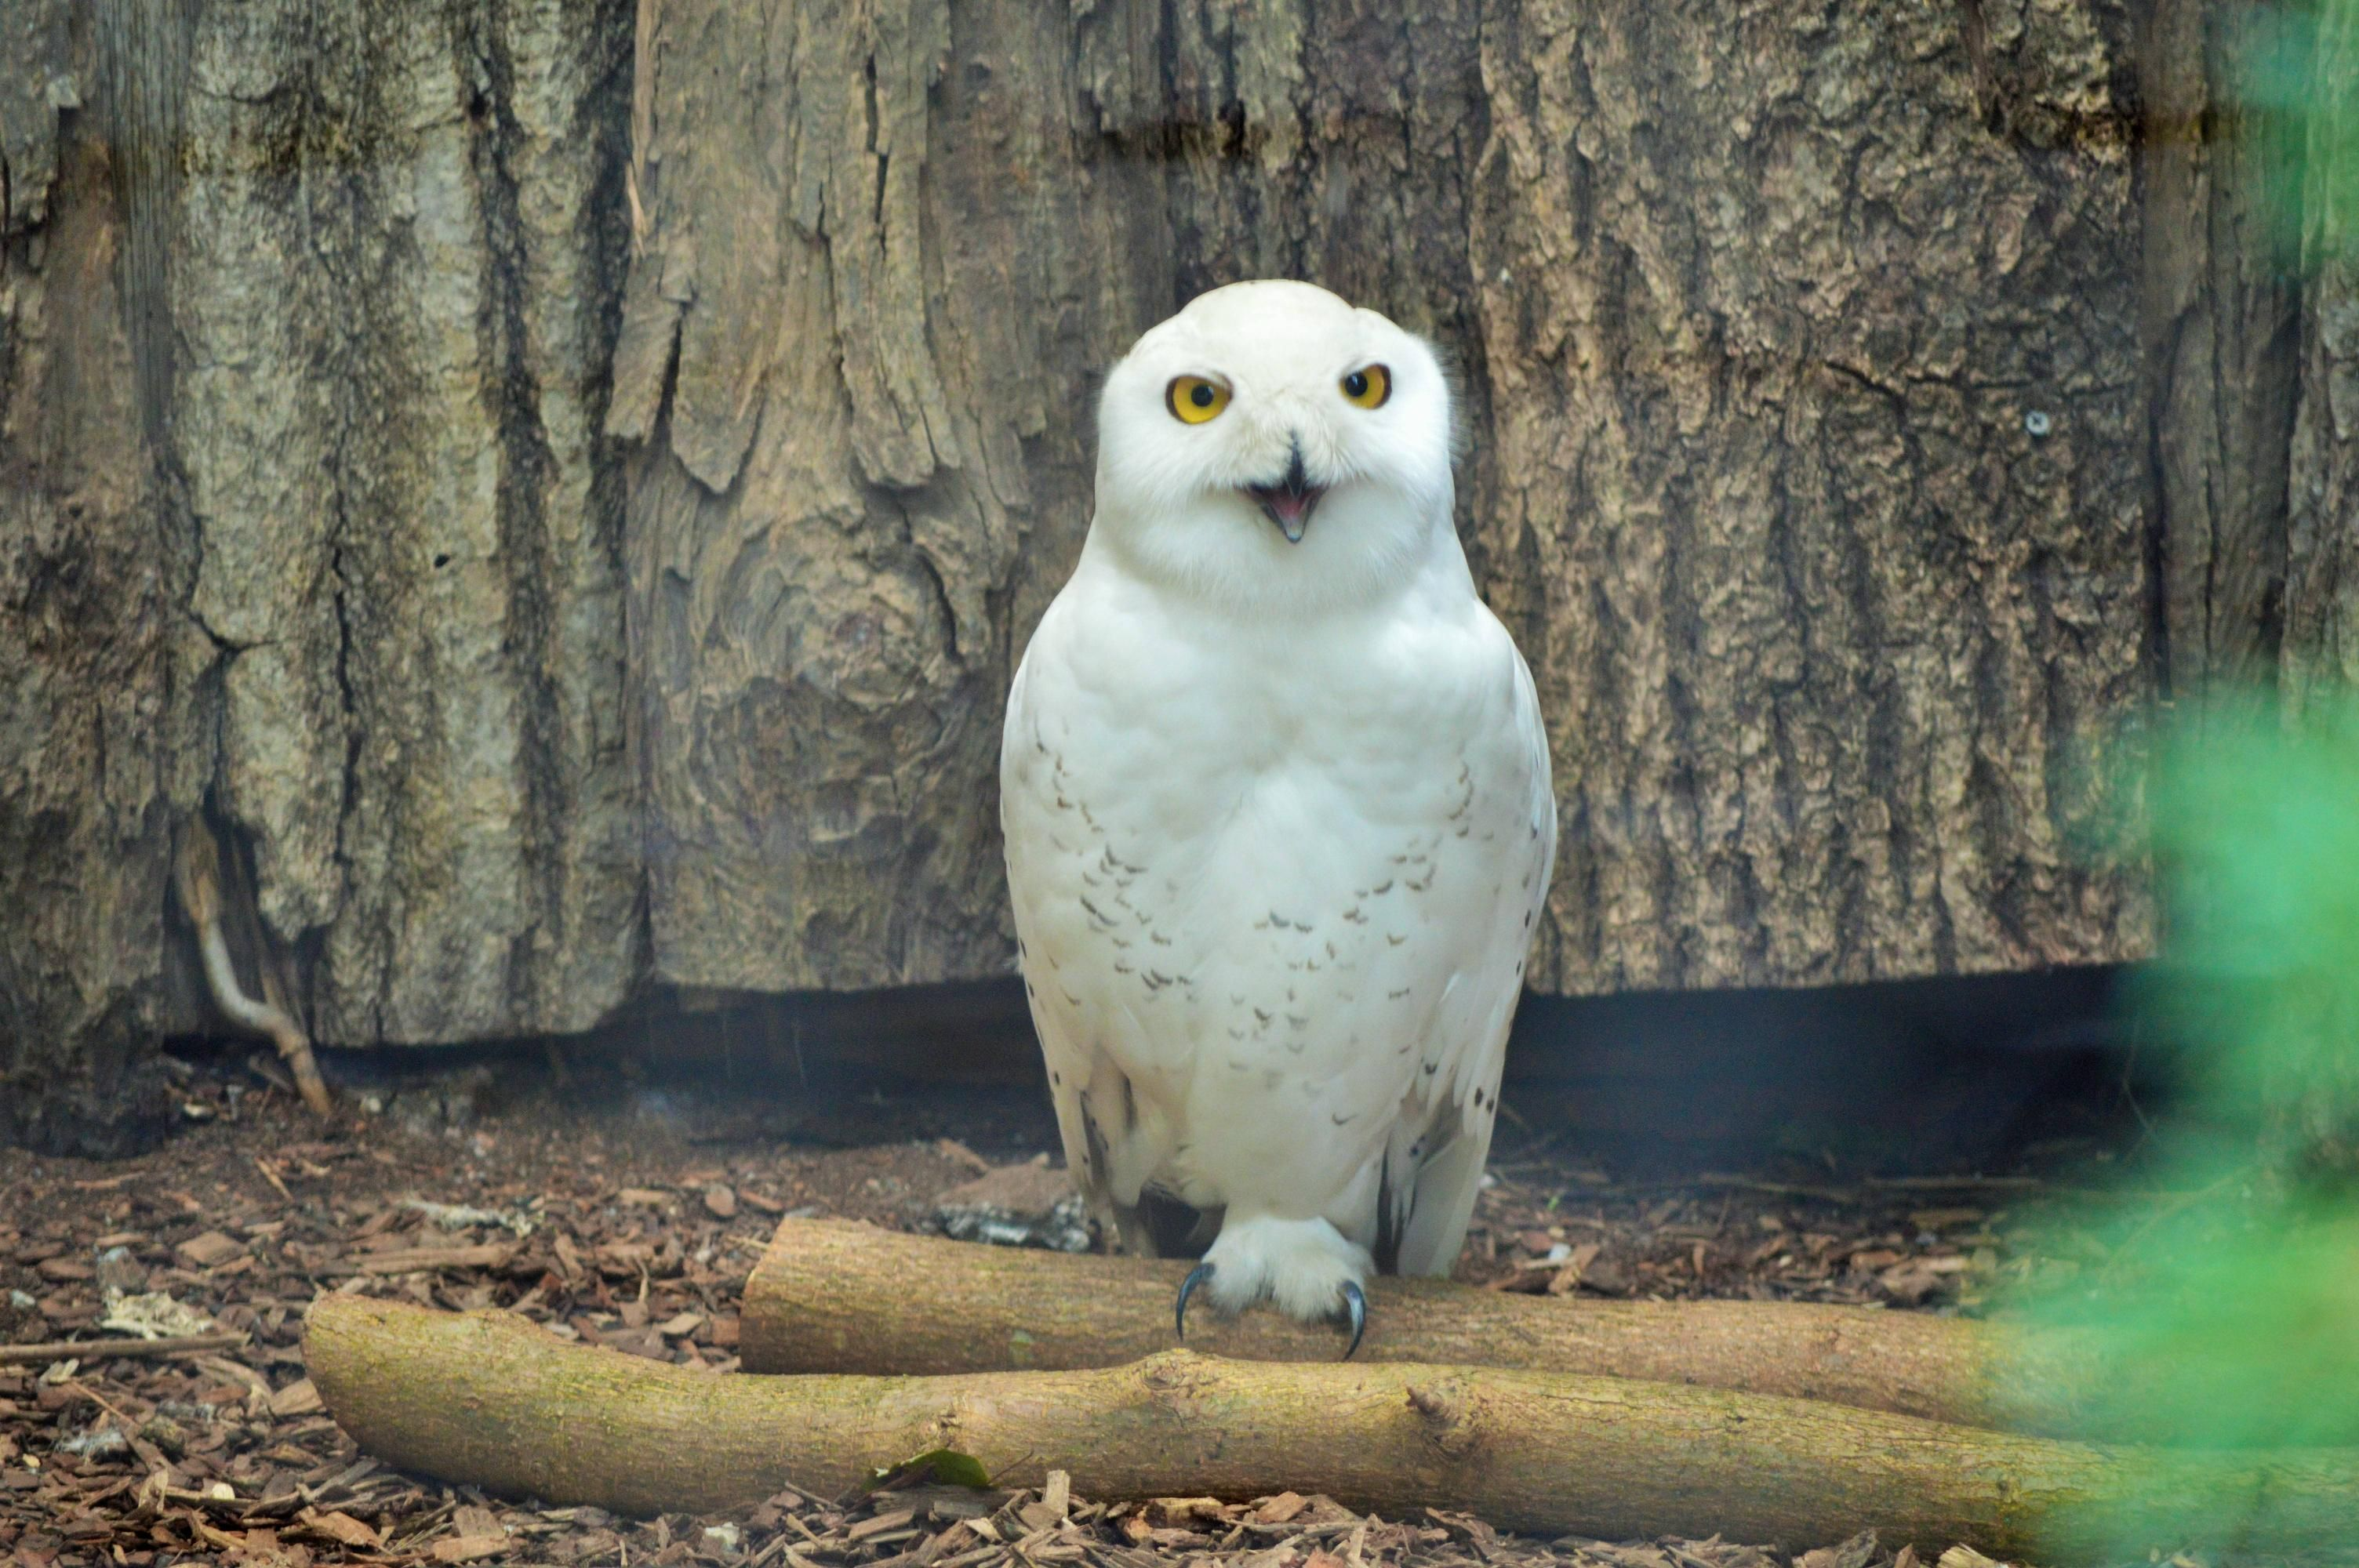 Took a photo of this beautiful snowy owl at the Nashville Zoo [6016 x 4000]